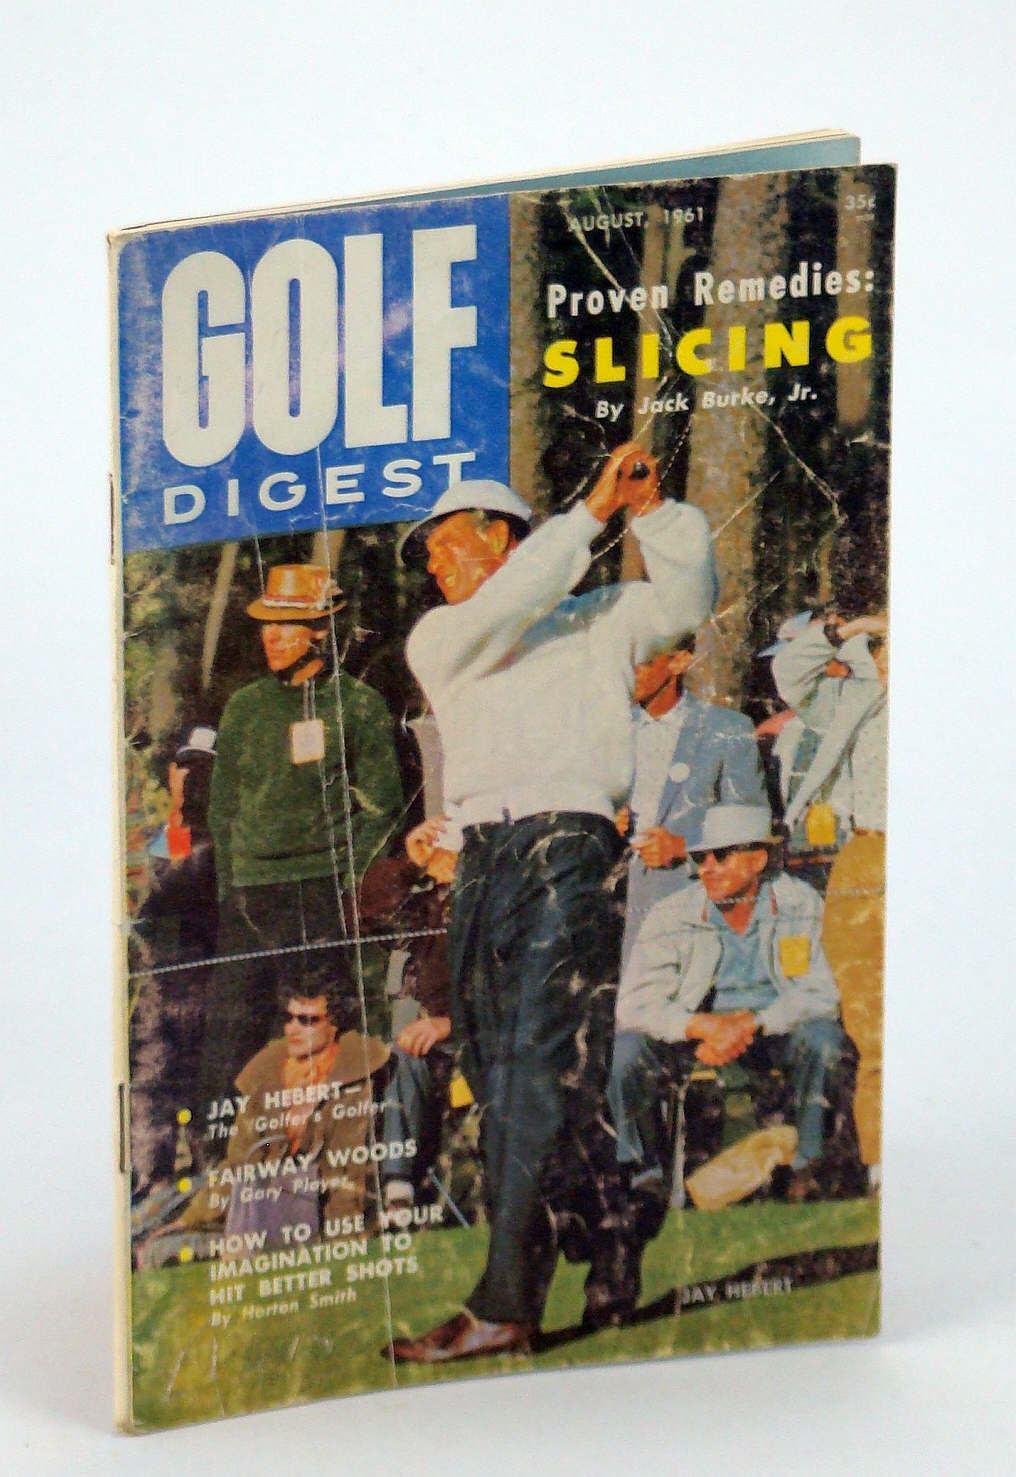 Image for Golf Digest - World's Largest Selling Golf Magazine, August [Aug.] 1961, Volume 12, No. 7 - Jay Hebert Cover Photo